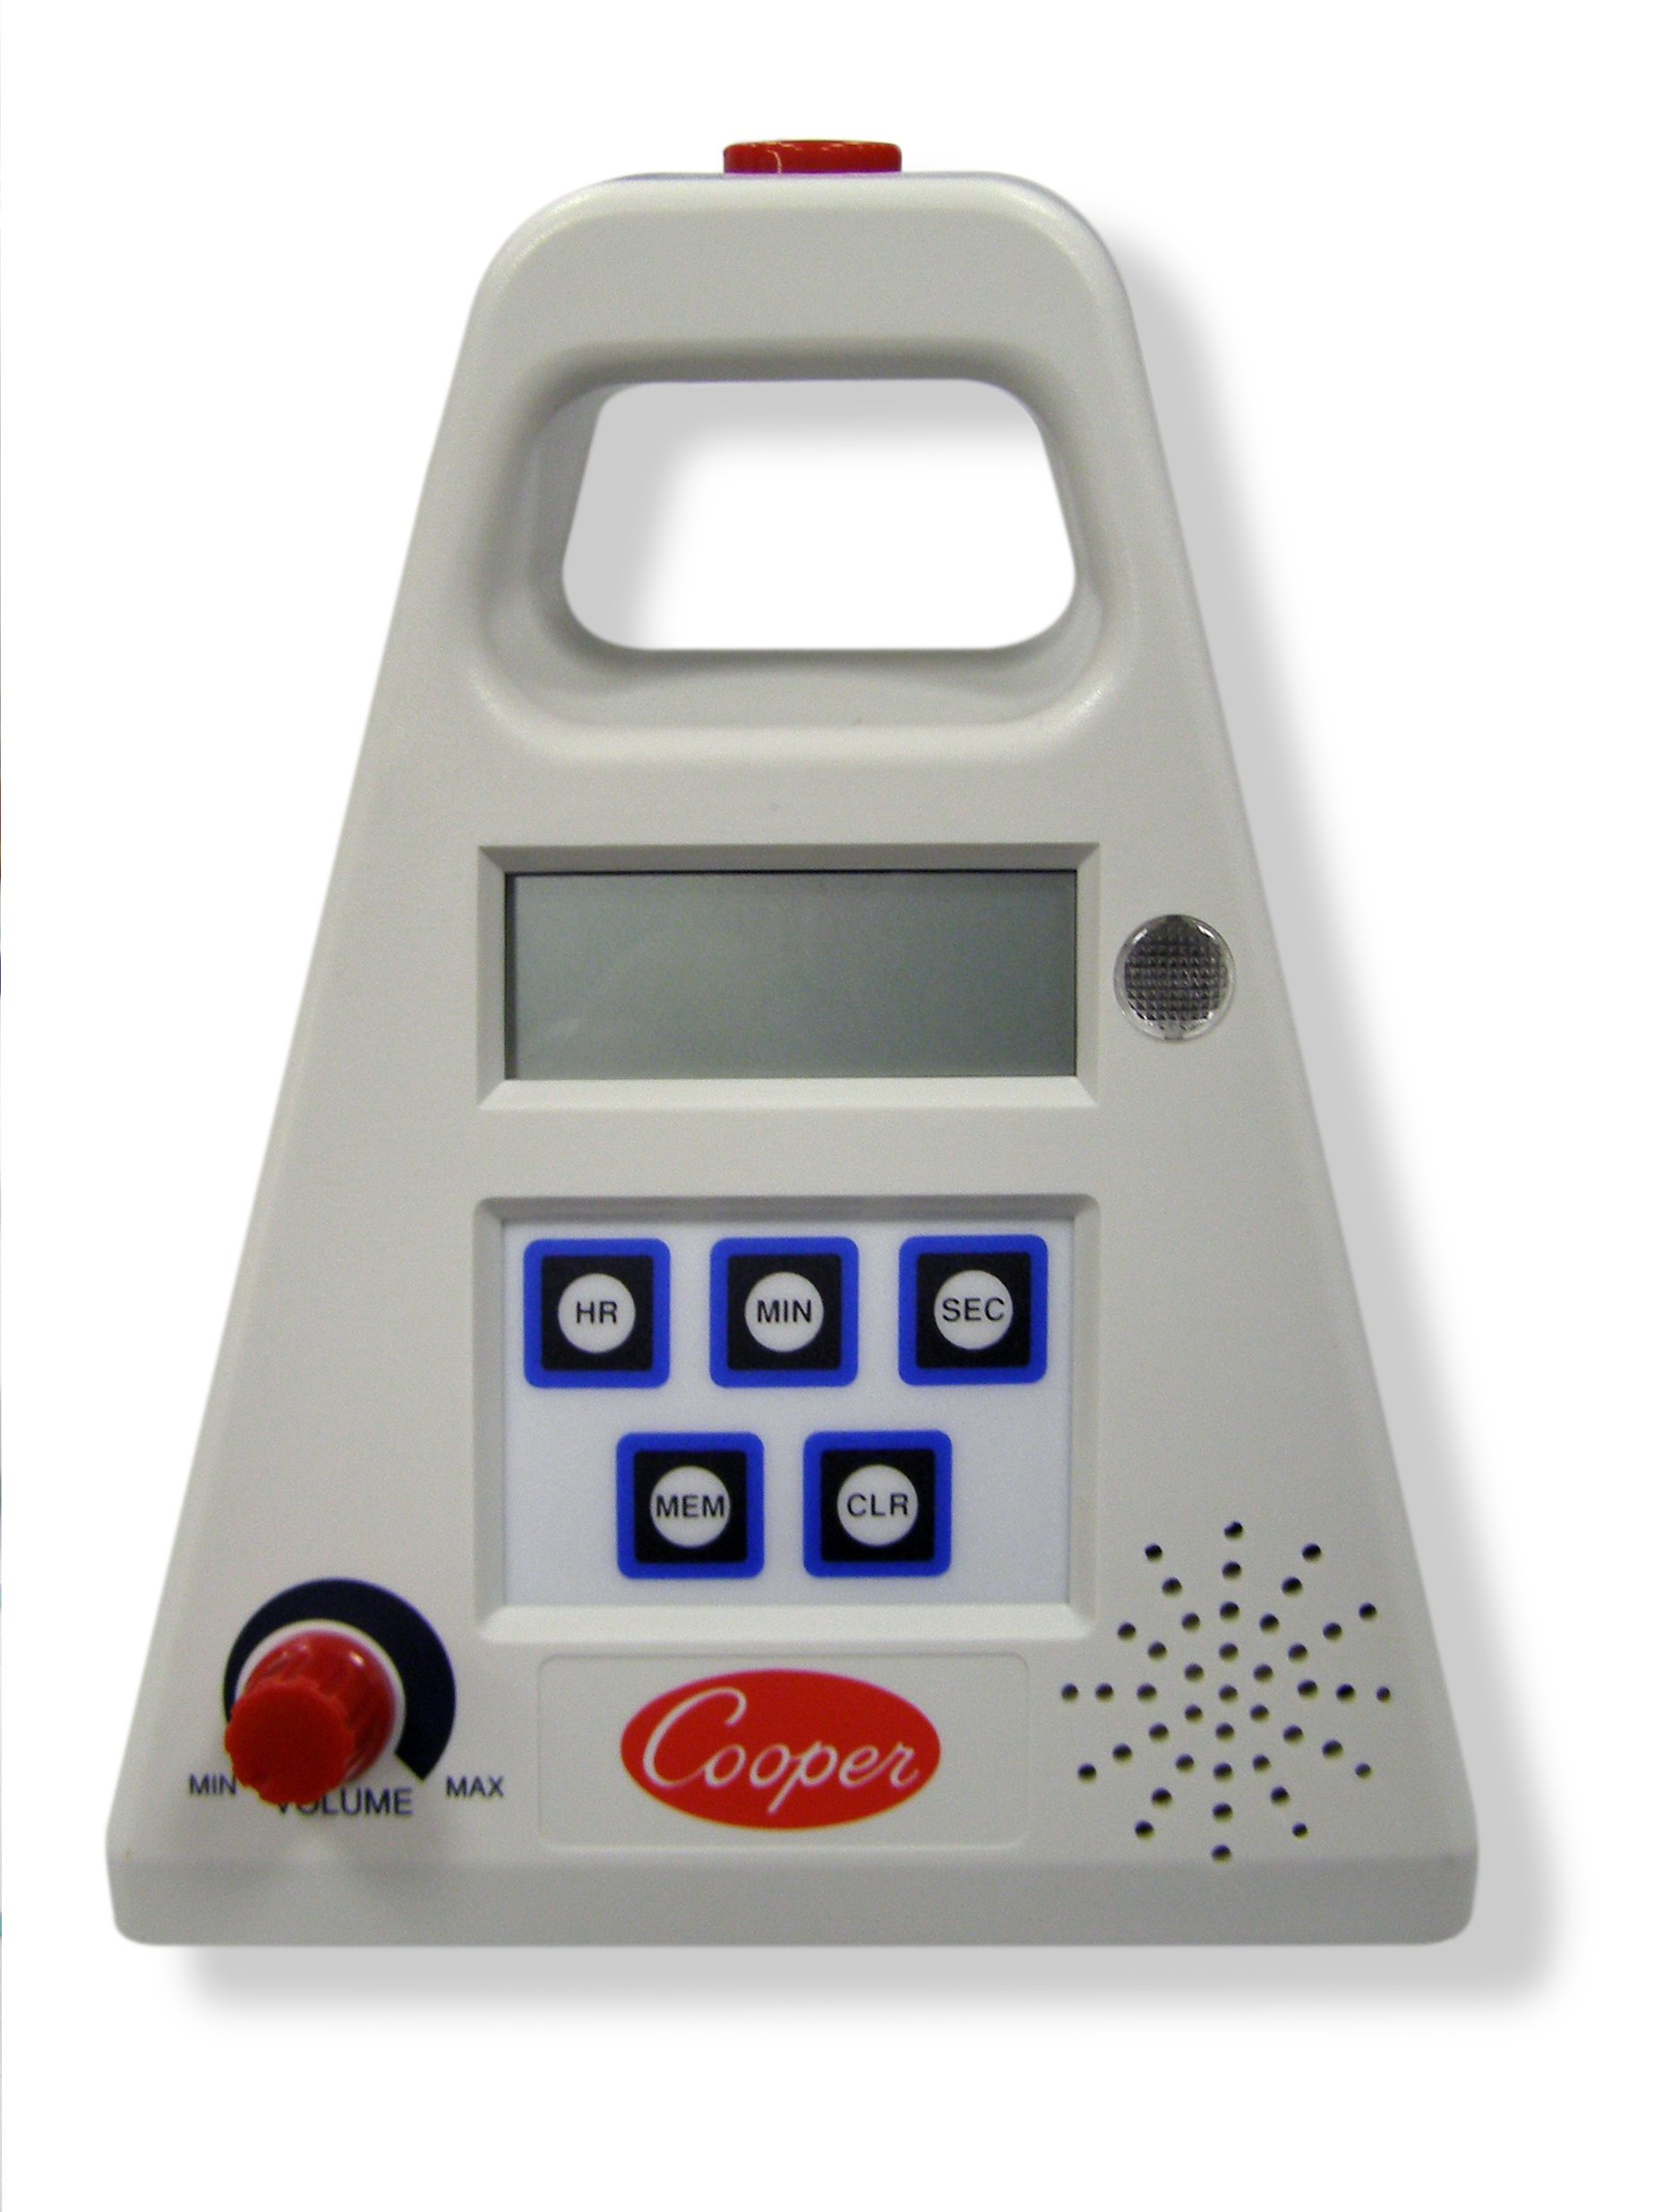 Cooper-Atkins FT24-0-3 Large Single Station Digital Timer, 24 Hour Digital with Volume Control, 24 Hours Unit Range by Cooper